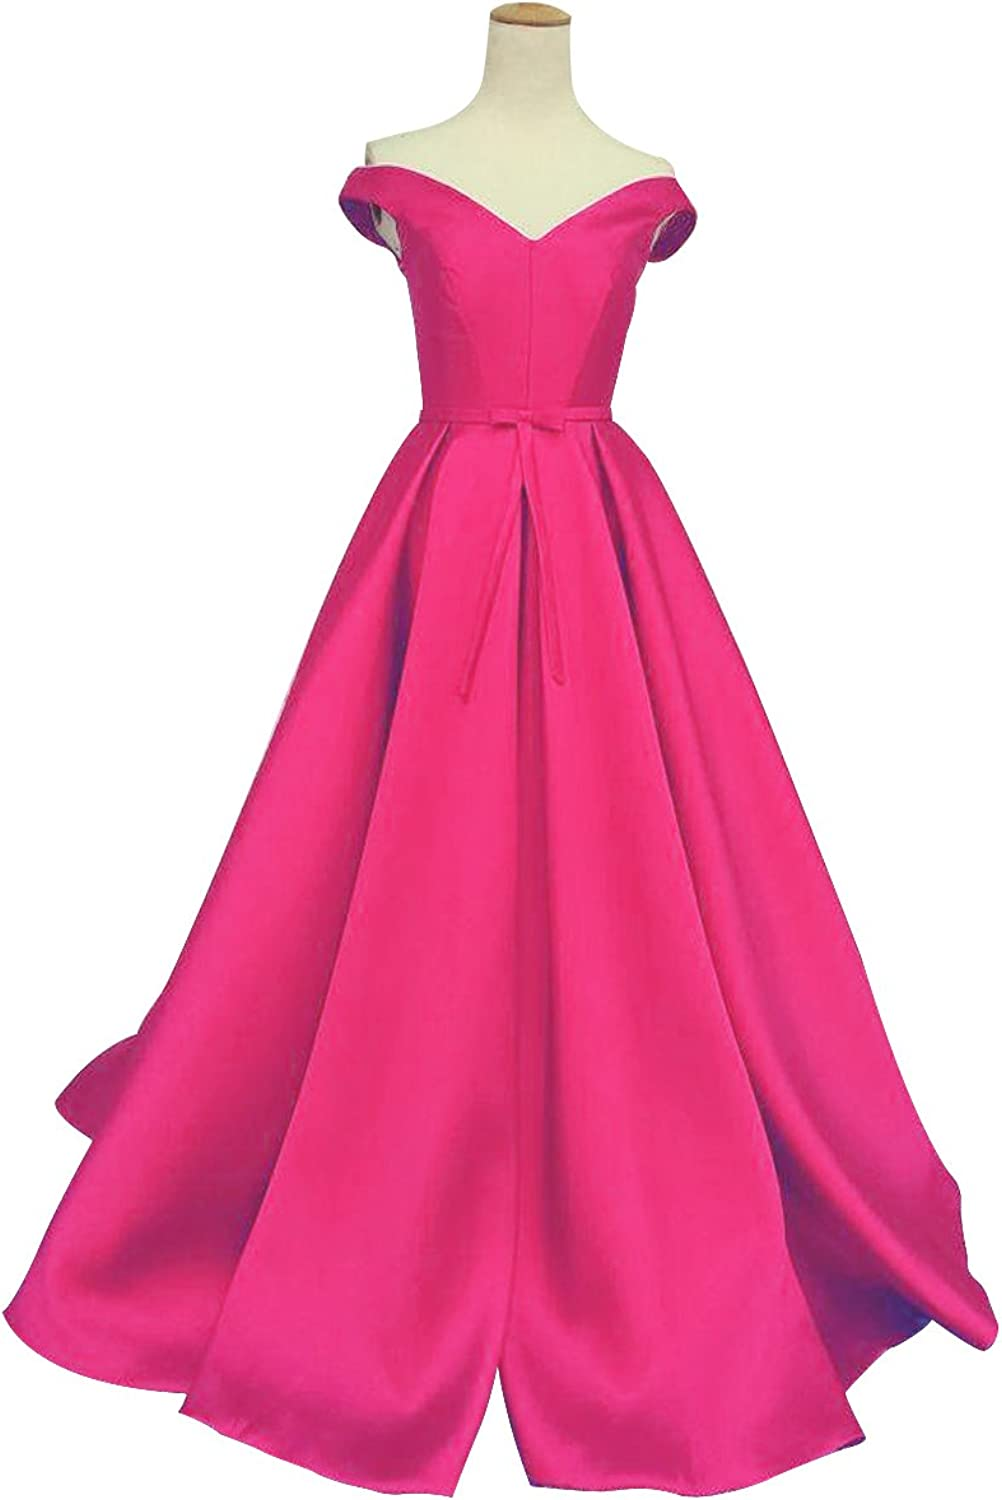 Selenova Women's Off The Shoulder ALine Evening Ball Gowns with Bow